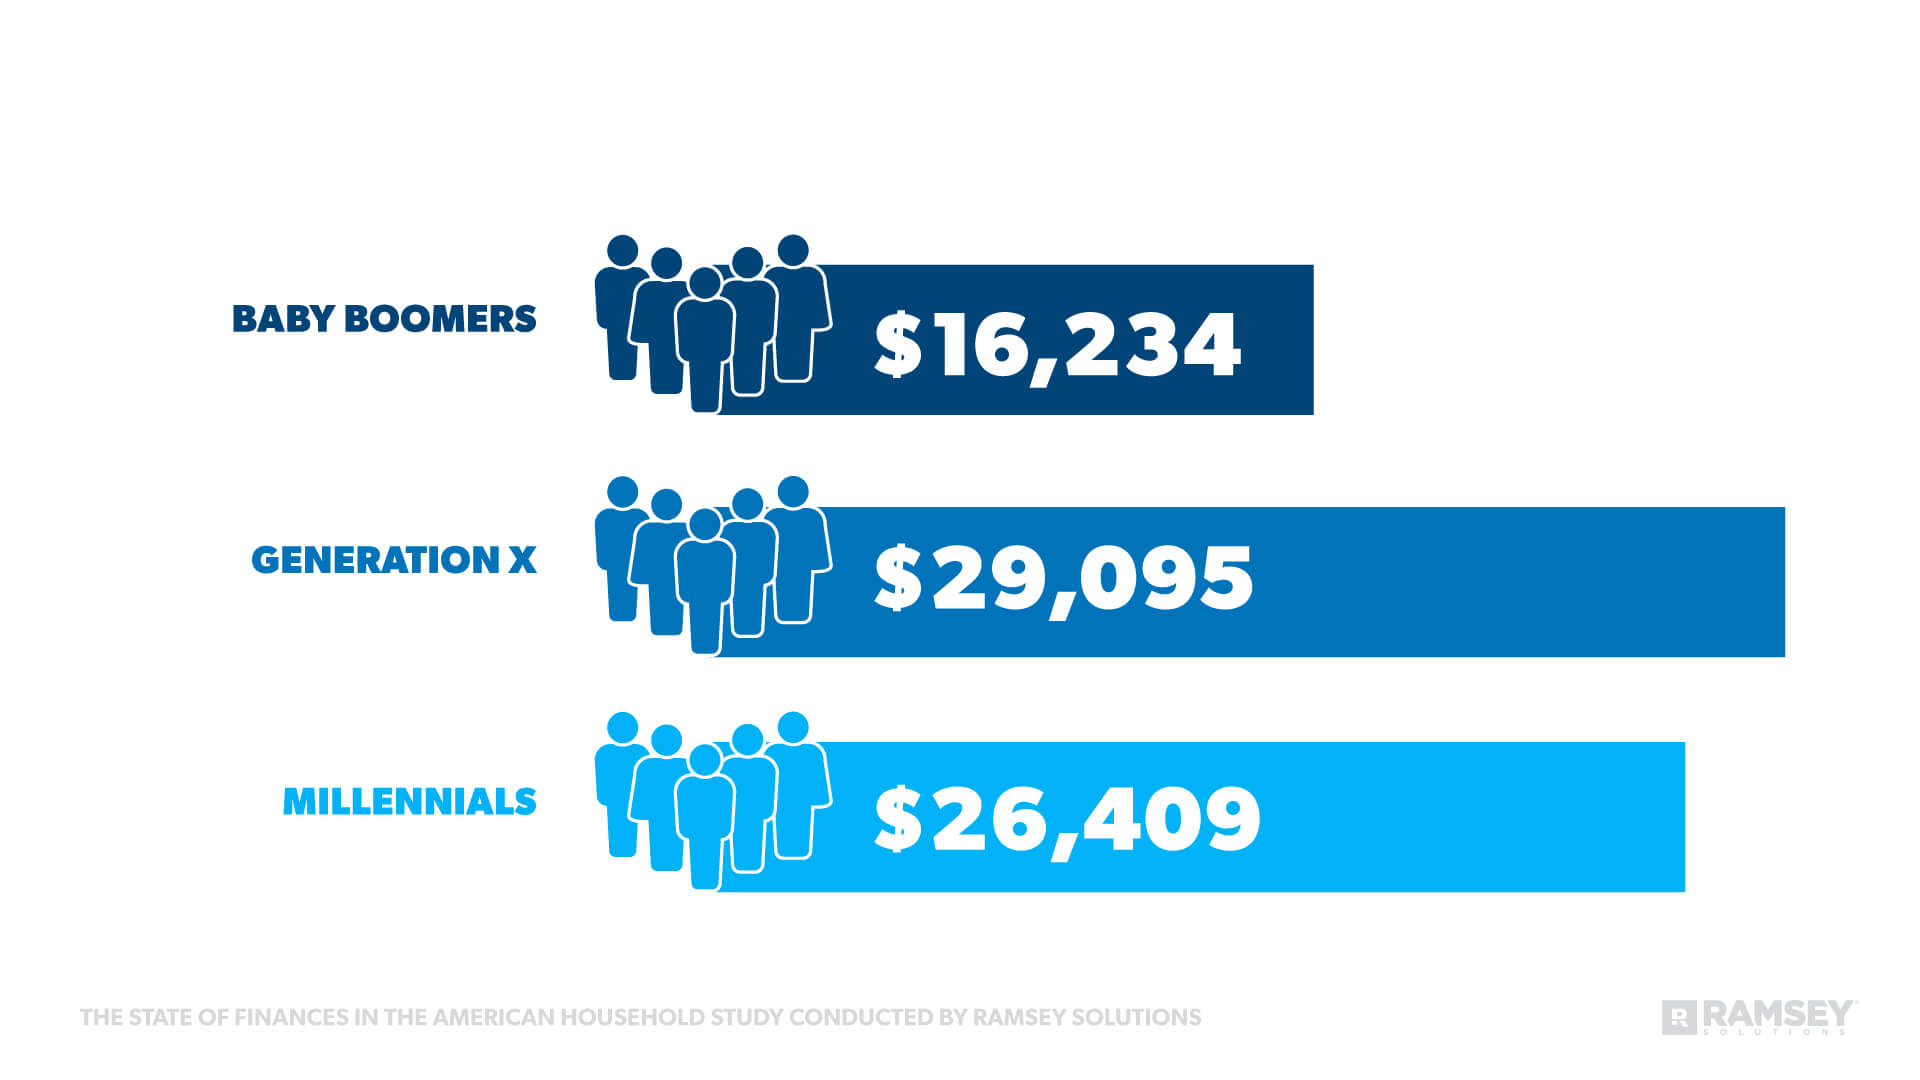 Average consumer debt across baby boomers, generation x, and millennials.